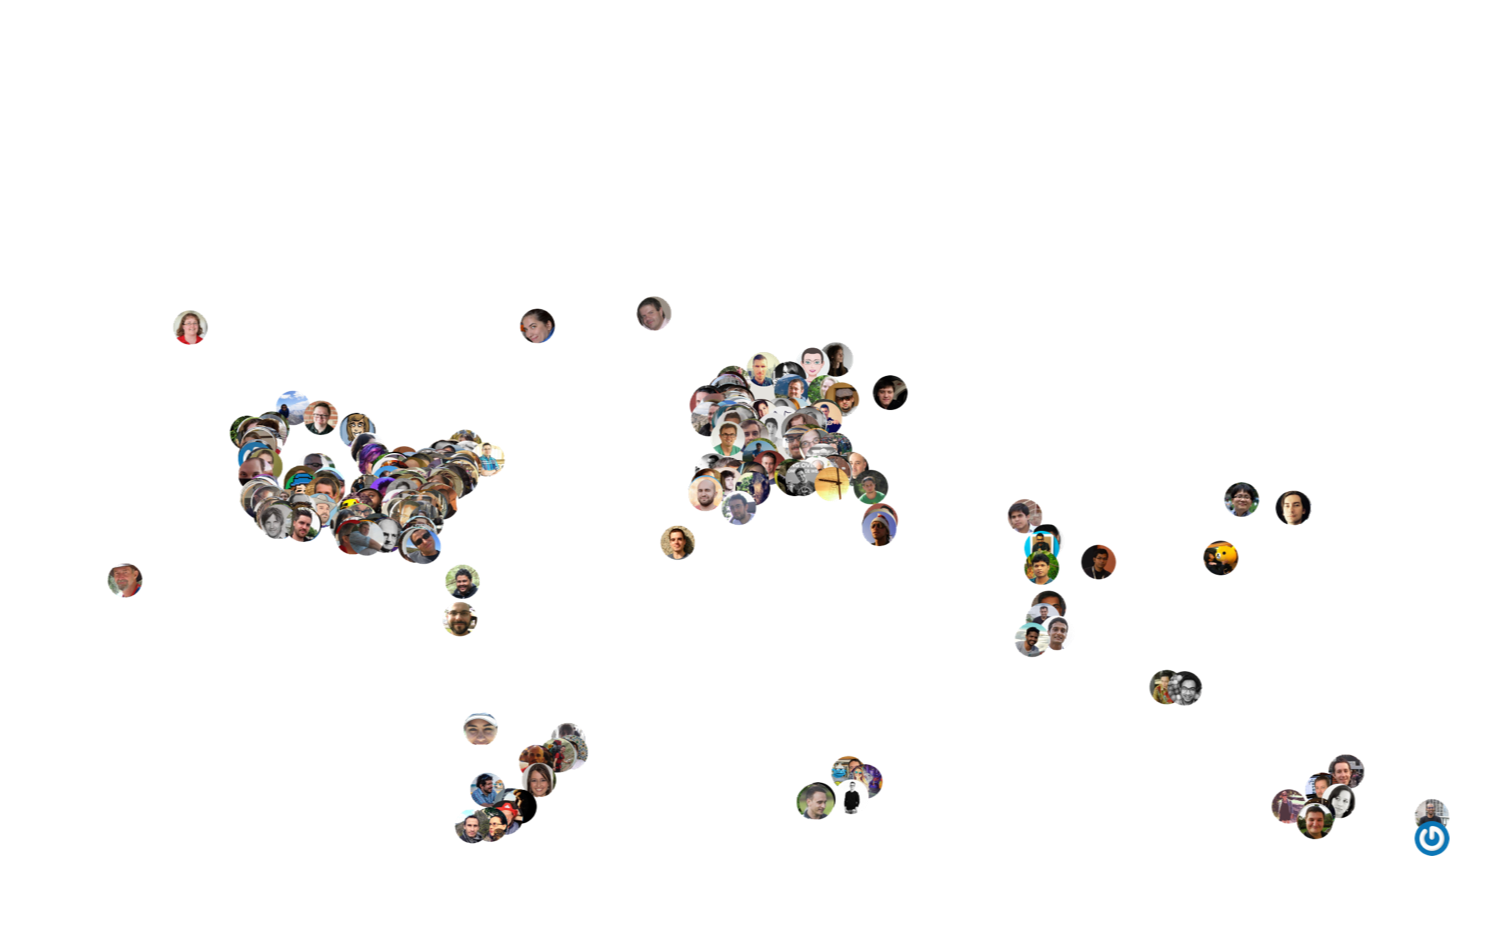 Automattic locations worldwide